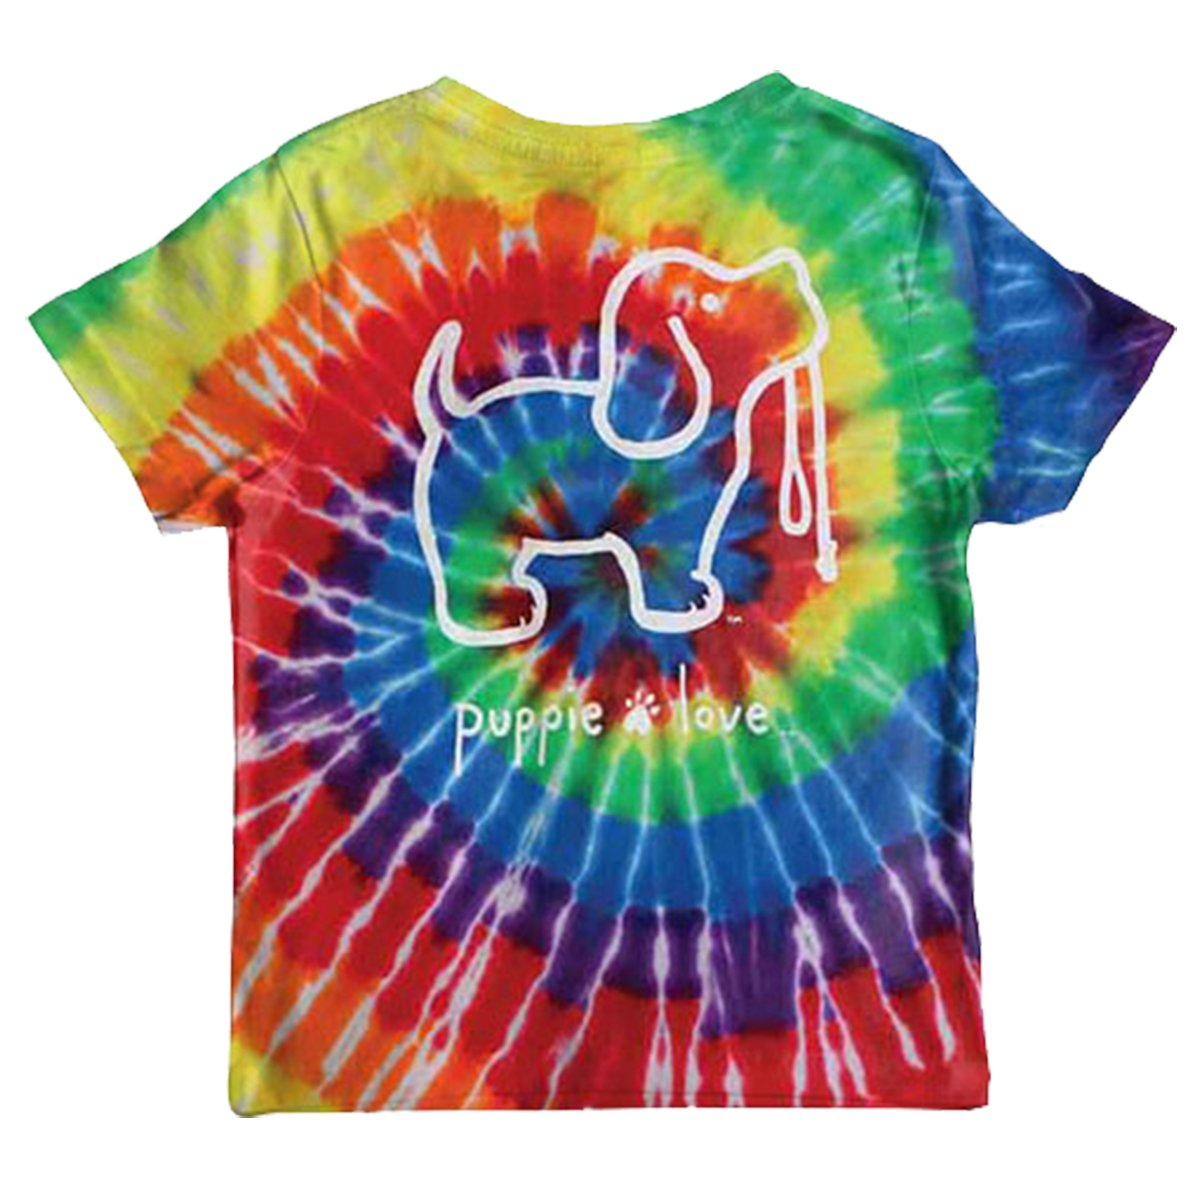 Puppie Love Youth Rainbow Tie Dye Pup Help Rescue Dogs T-Shirt-Youth Medium